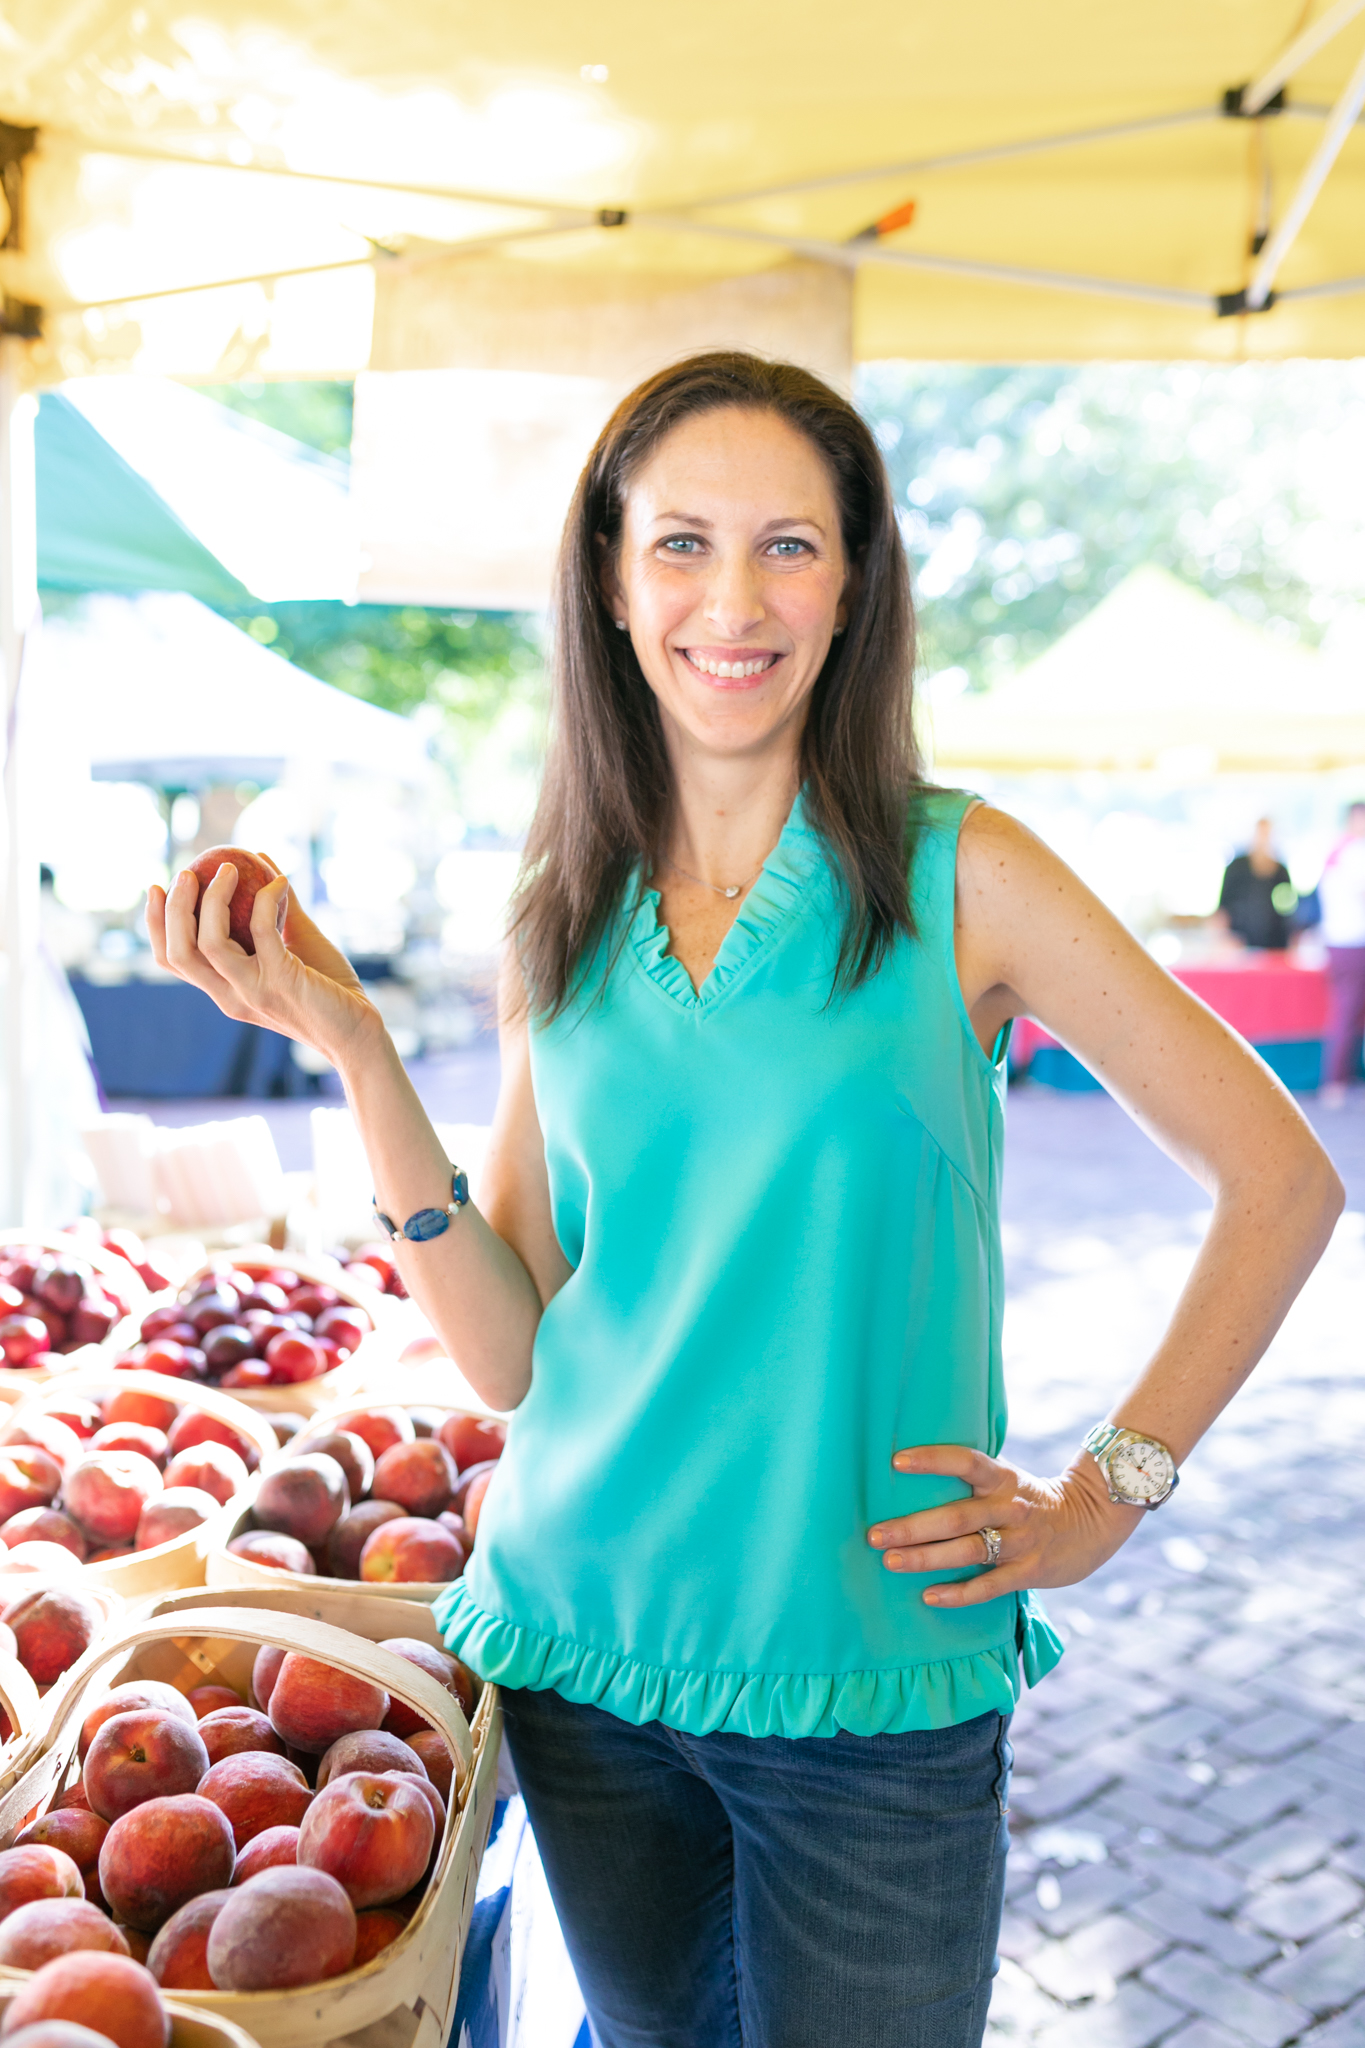 - Registered Dietitian-nutritionist, sales and marketing professional, Certified Lactation Educator-Counselor, Certified Personal Trainer, book author, and devoted mom-of-one Lauren Manaker started her business in 2018. Lauren wanted to make quality nutritional advice more accessible, so she launched her company to provide an easily-accessible expert source for men and women hoping to become parents as well as for small food companies who wish to connect with the registered dietitian community.  Please take a moment to learn more about Lauren.